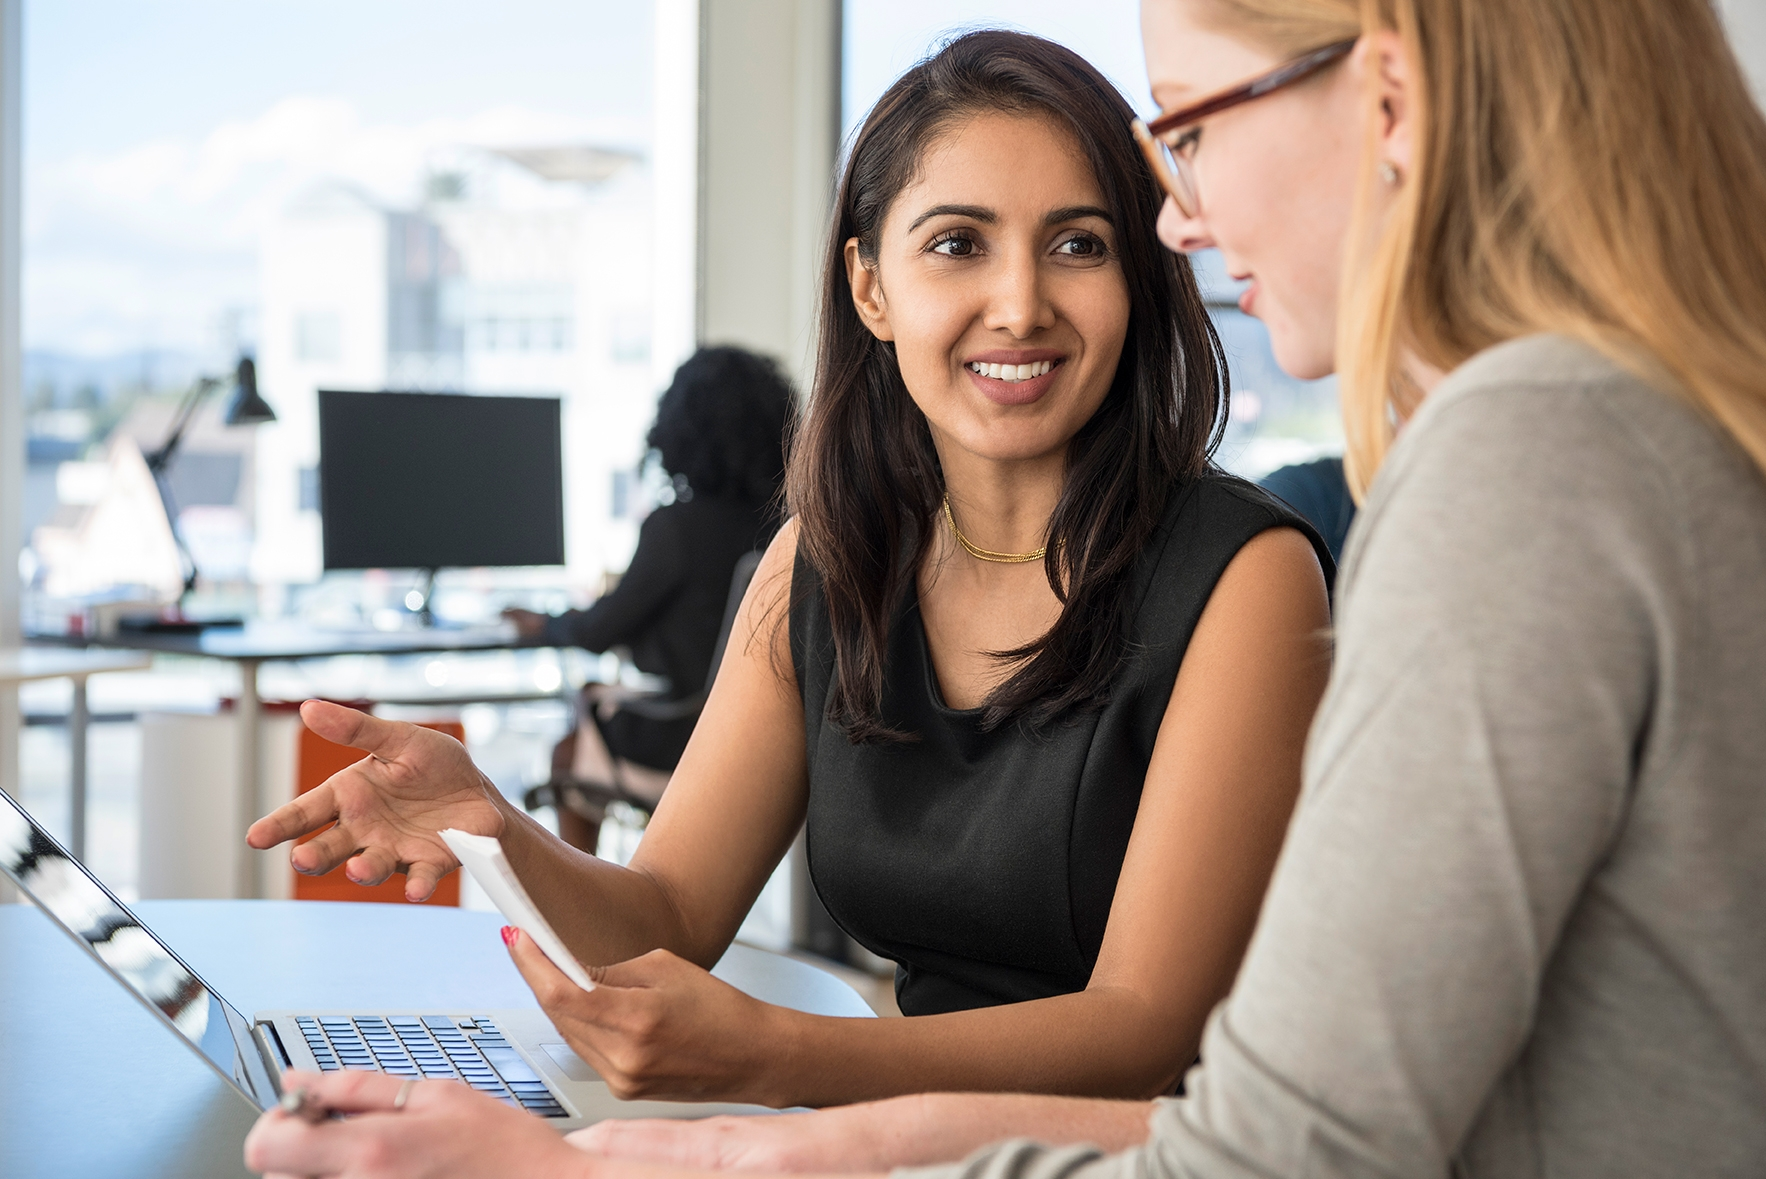 Two ladies of different ethnic backgrounds smiling and chatting over a laptop in an office space.